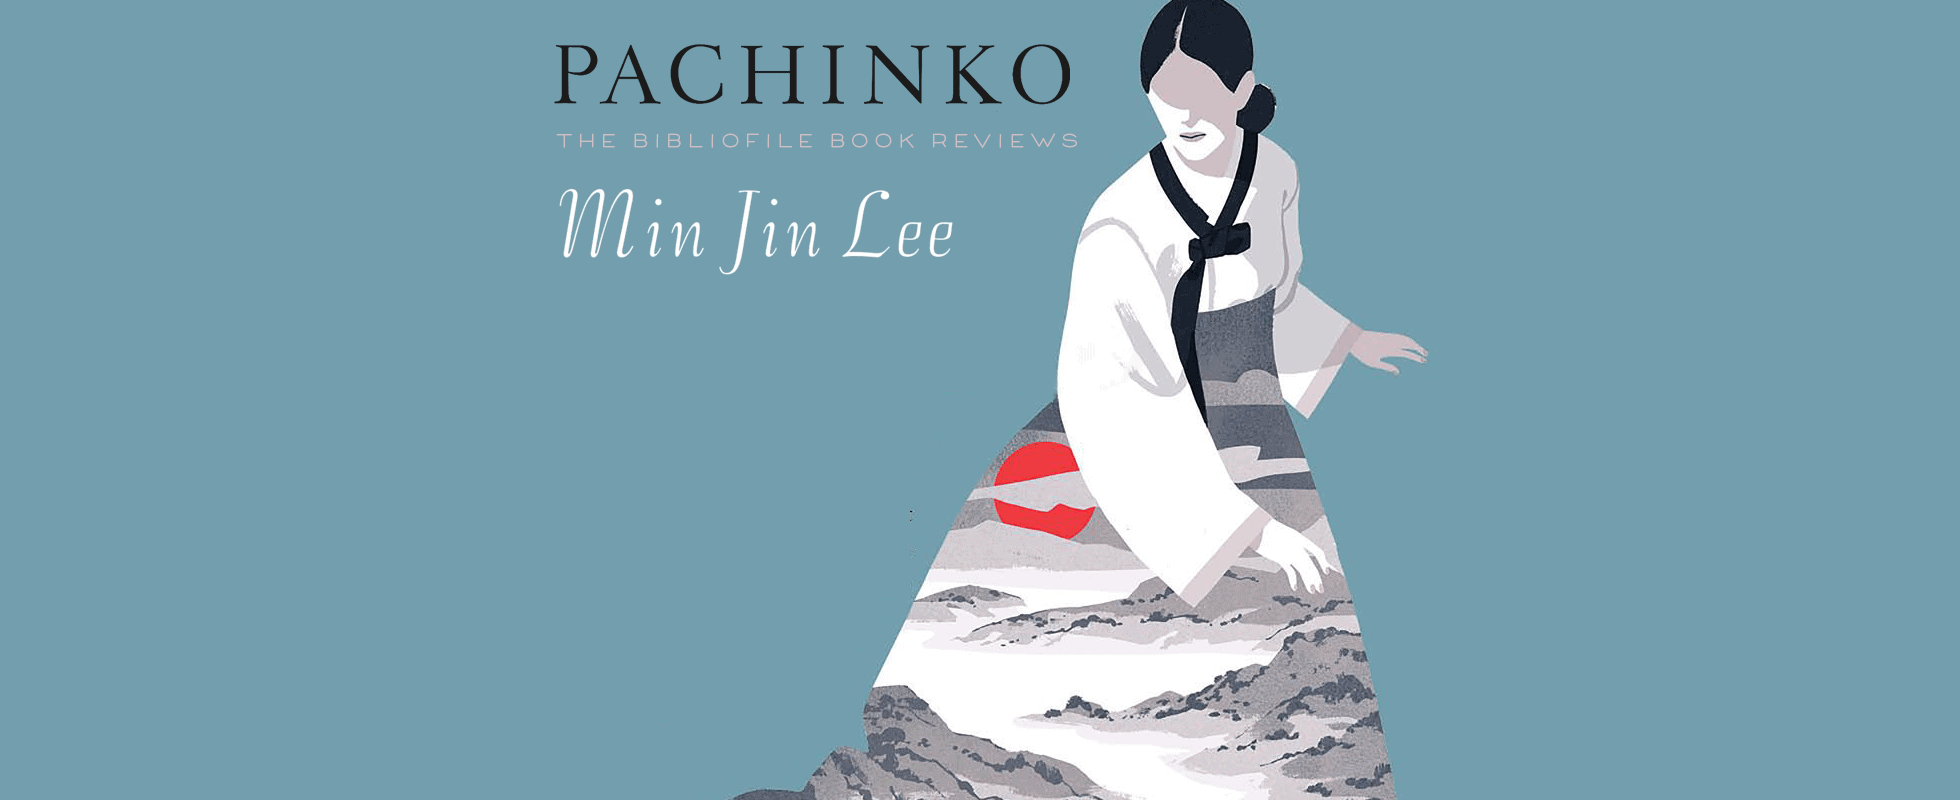 pachinko book review plot summary detailed synopsis ending spoilers recap